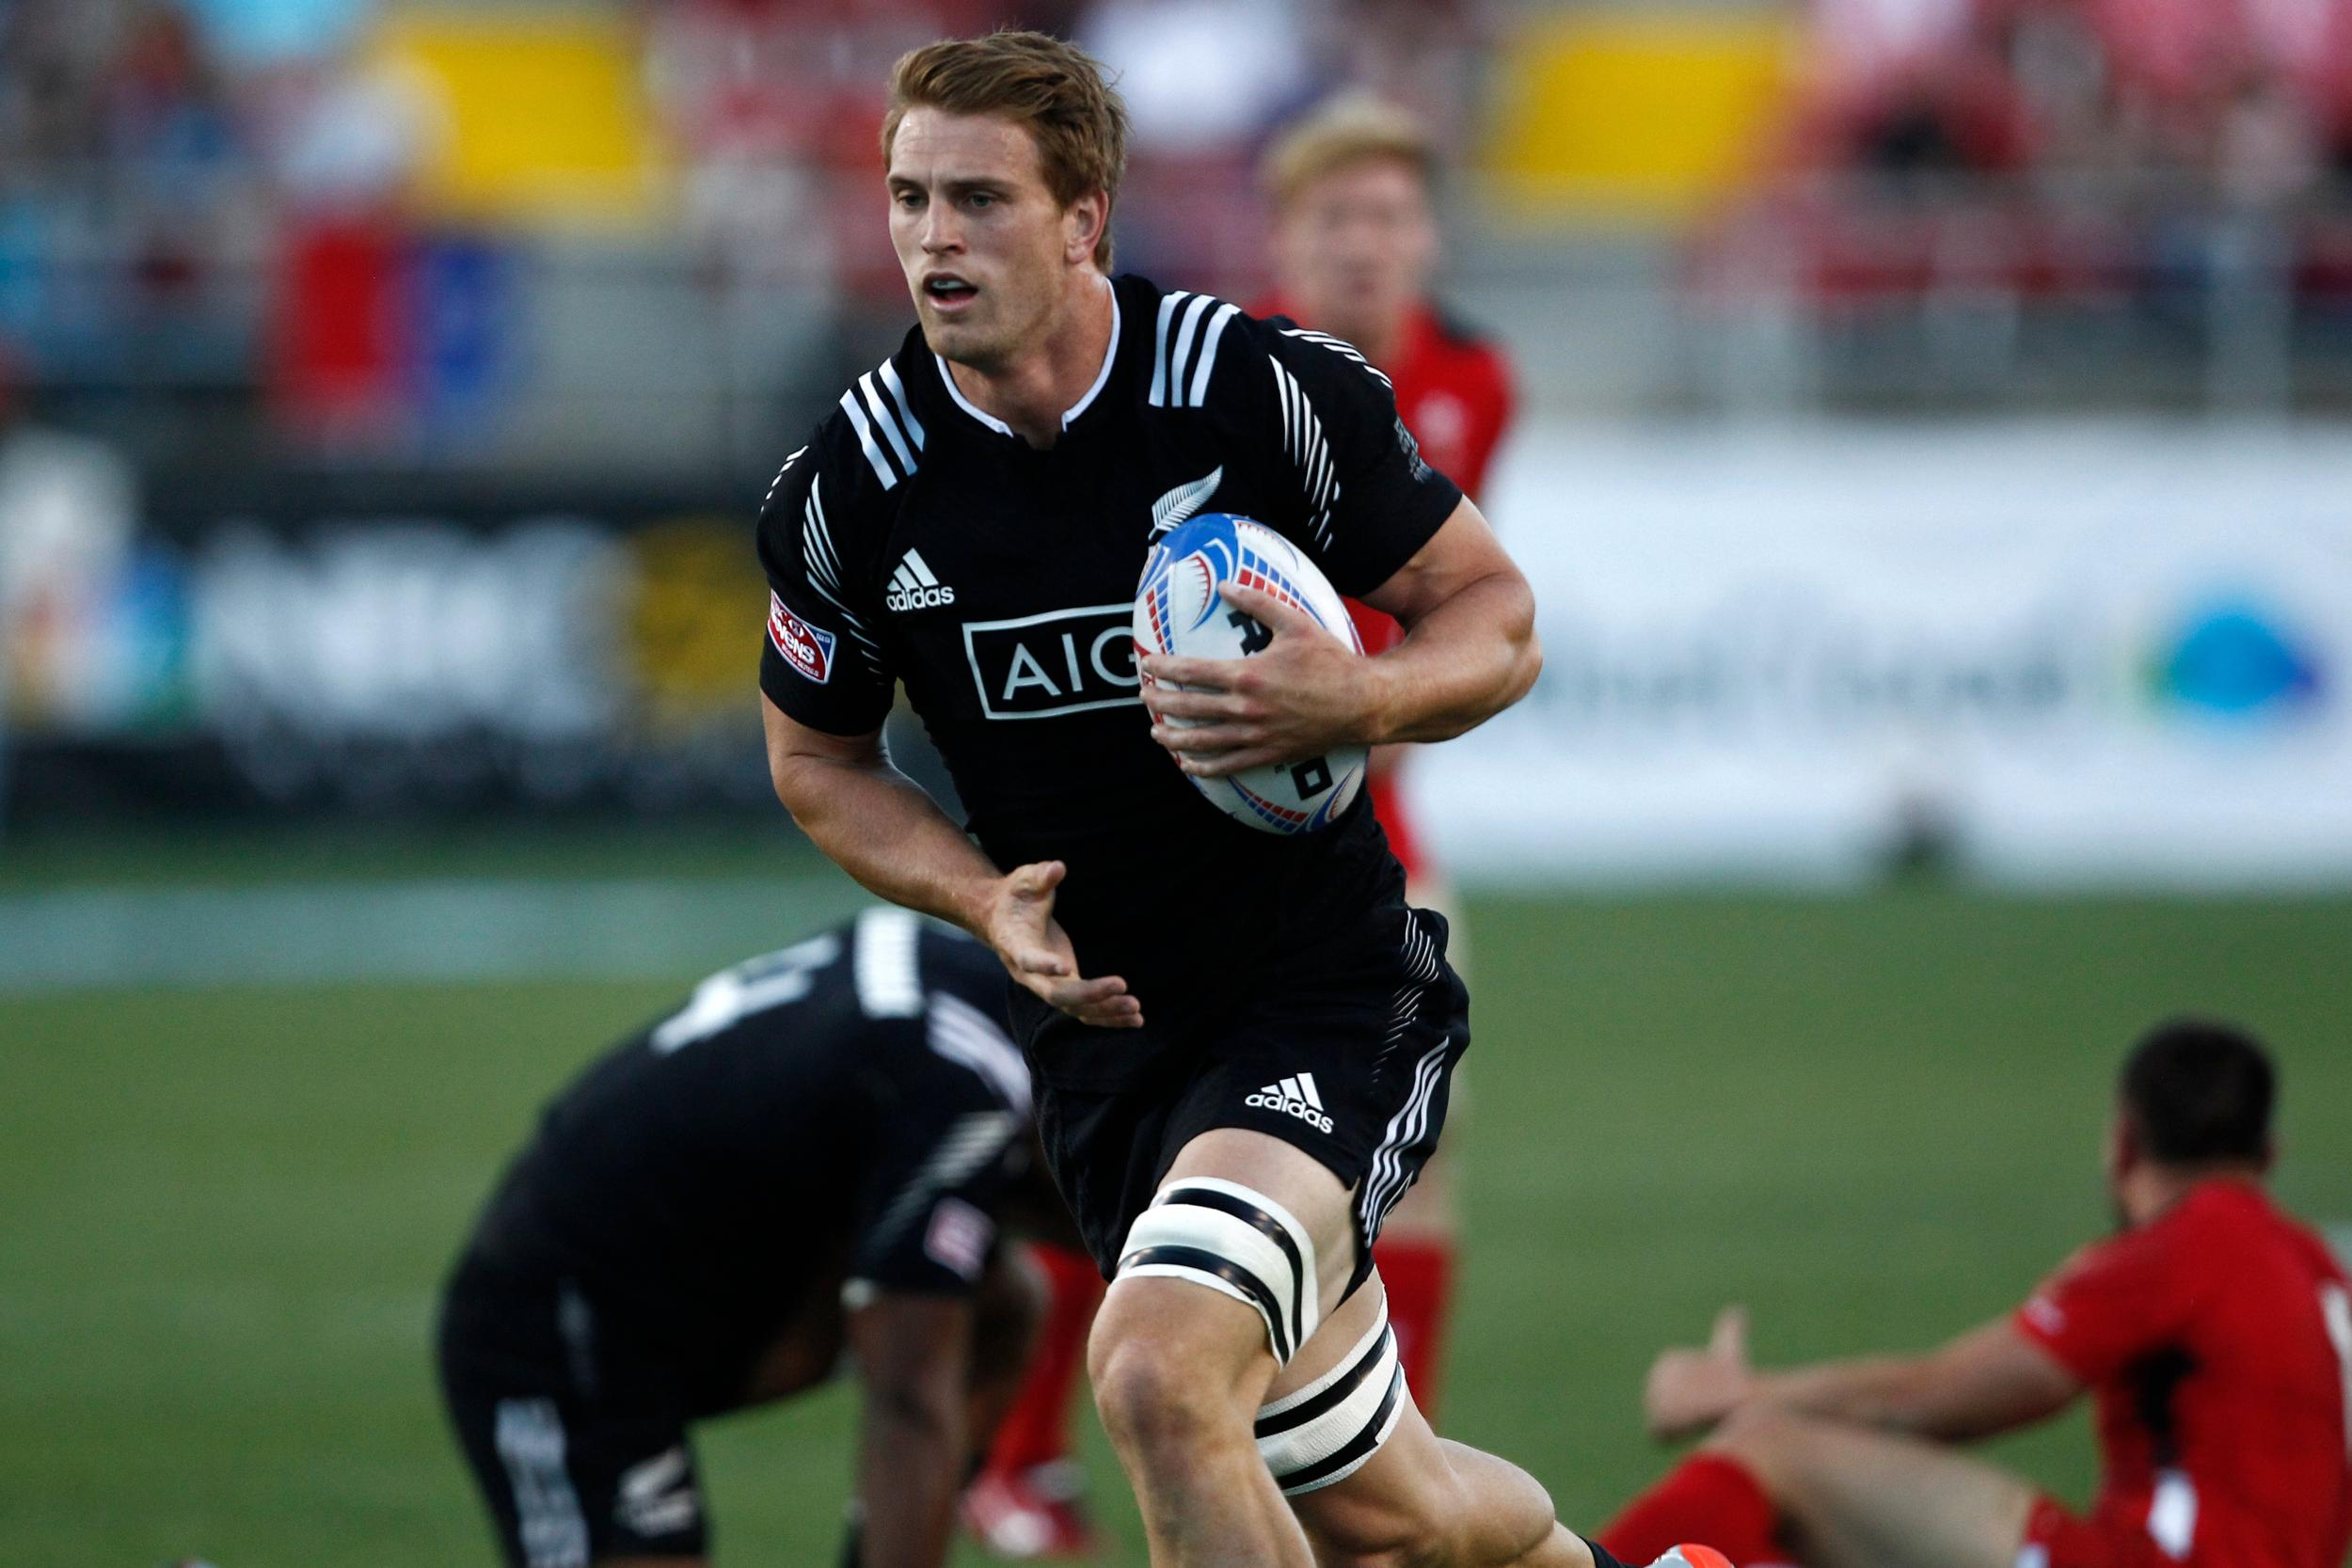 New Zealand fresh from winning their home series progressed to the quarter finals in Las Vegas ©World Rugby